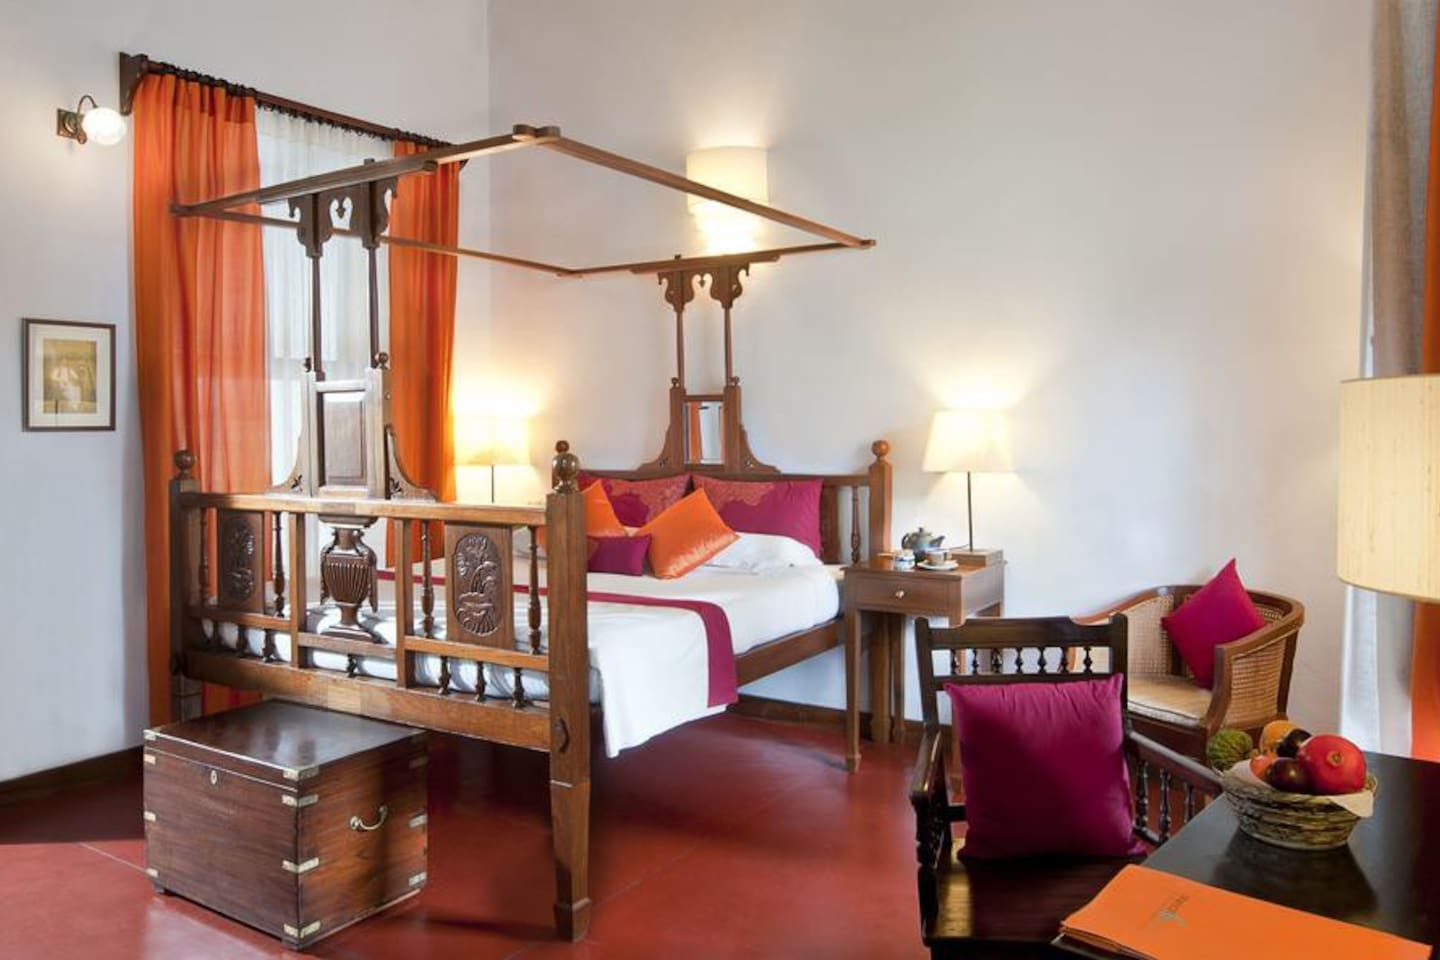 Feel Quite at Home at Pondicherry - Heritage hotels (India) for Rent in  Puducherry, Puducherry, India - Feel Quite At Home At Pondicherry - Heritage Hotels (India) For Rent